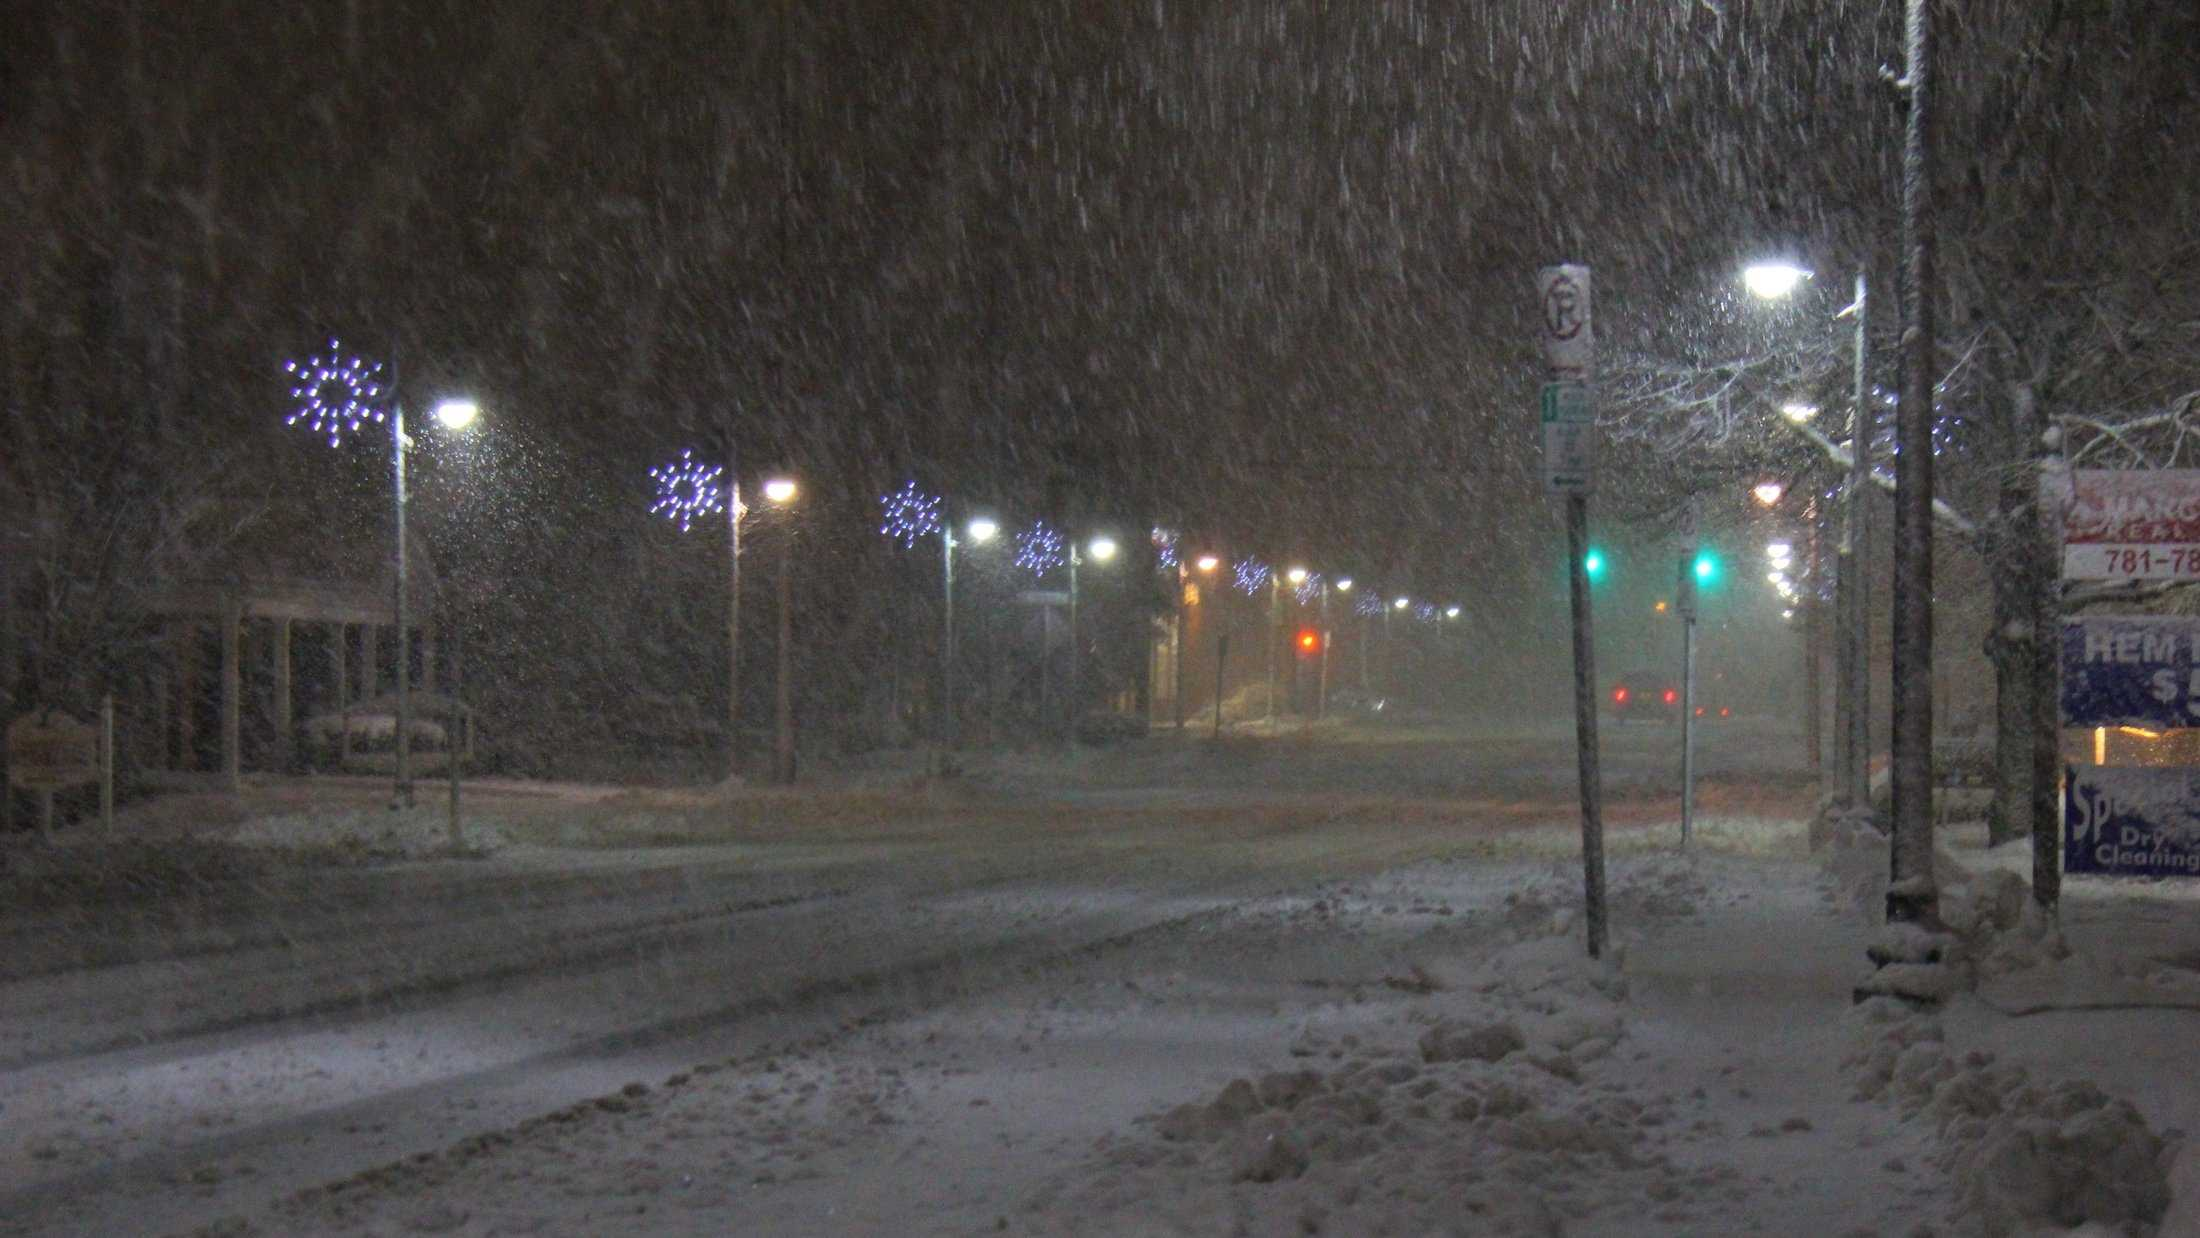 Heavy snow falling Saturday night along Route 27 in Sharon.